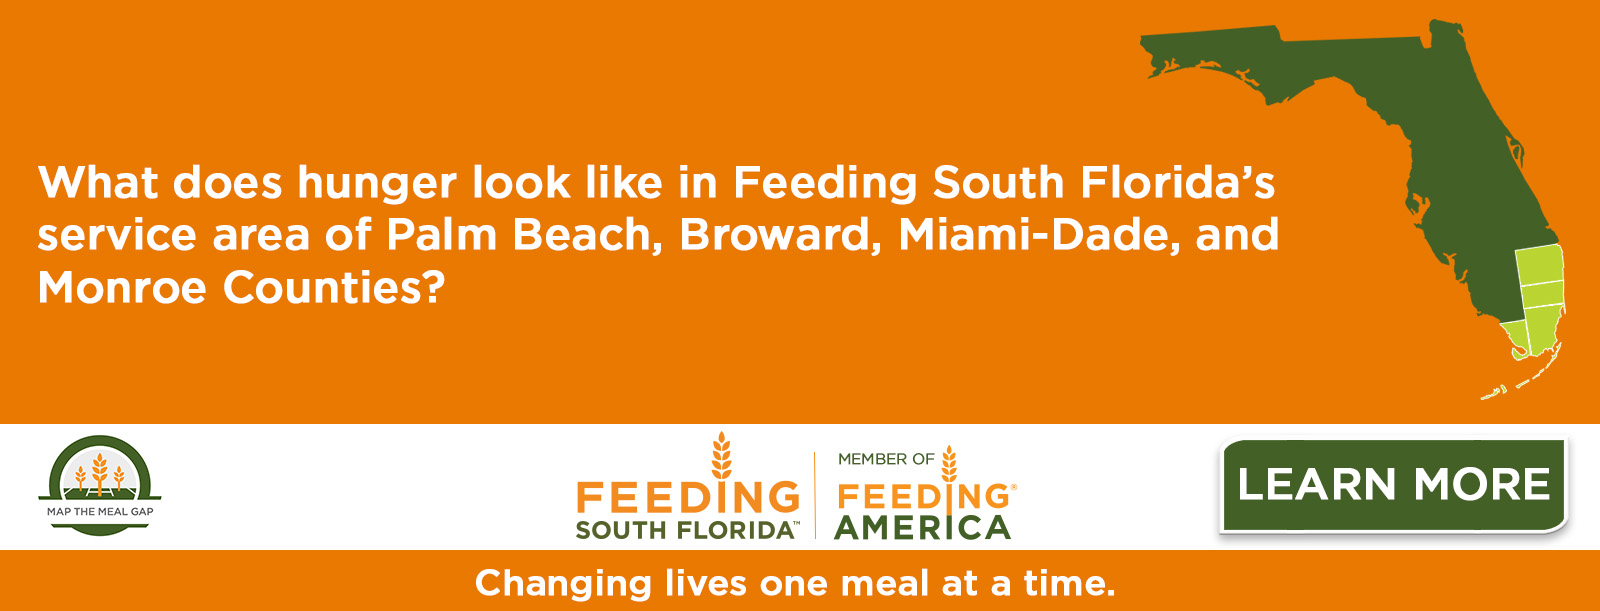 Food Insecurity in South Florida – Updated Map the Meal Gap Analysis Released